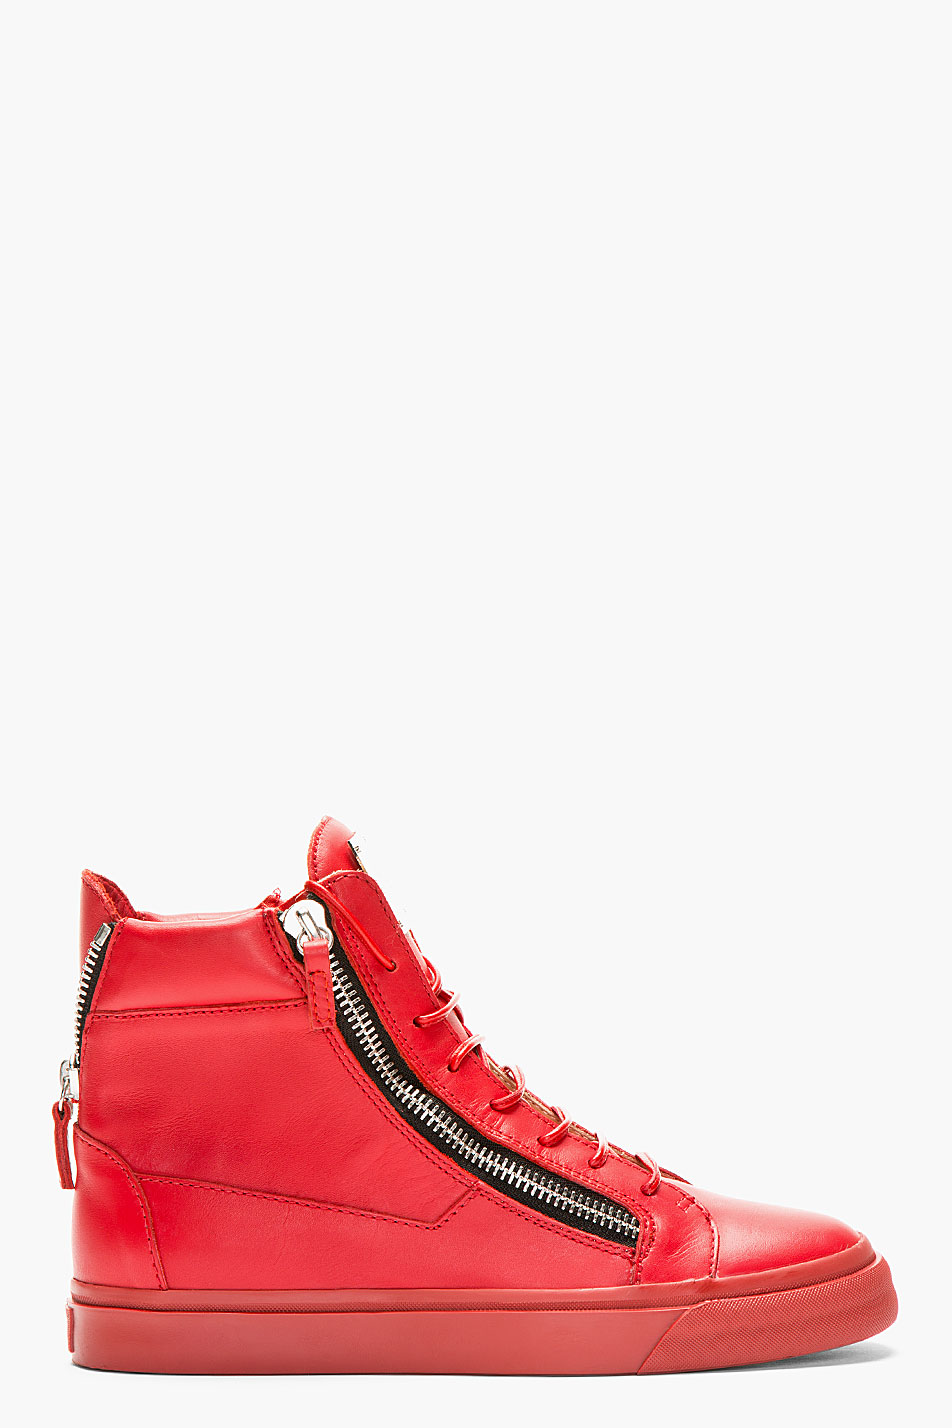 giuseppe zanotti red leather high_top sneakers